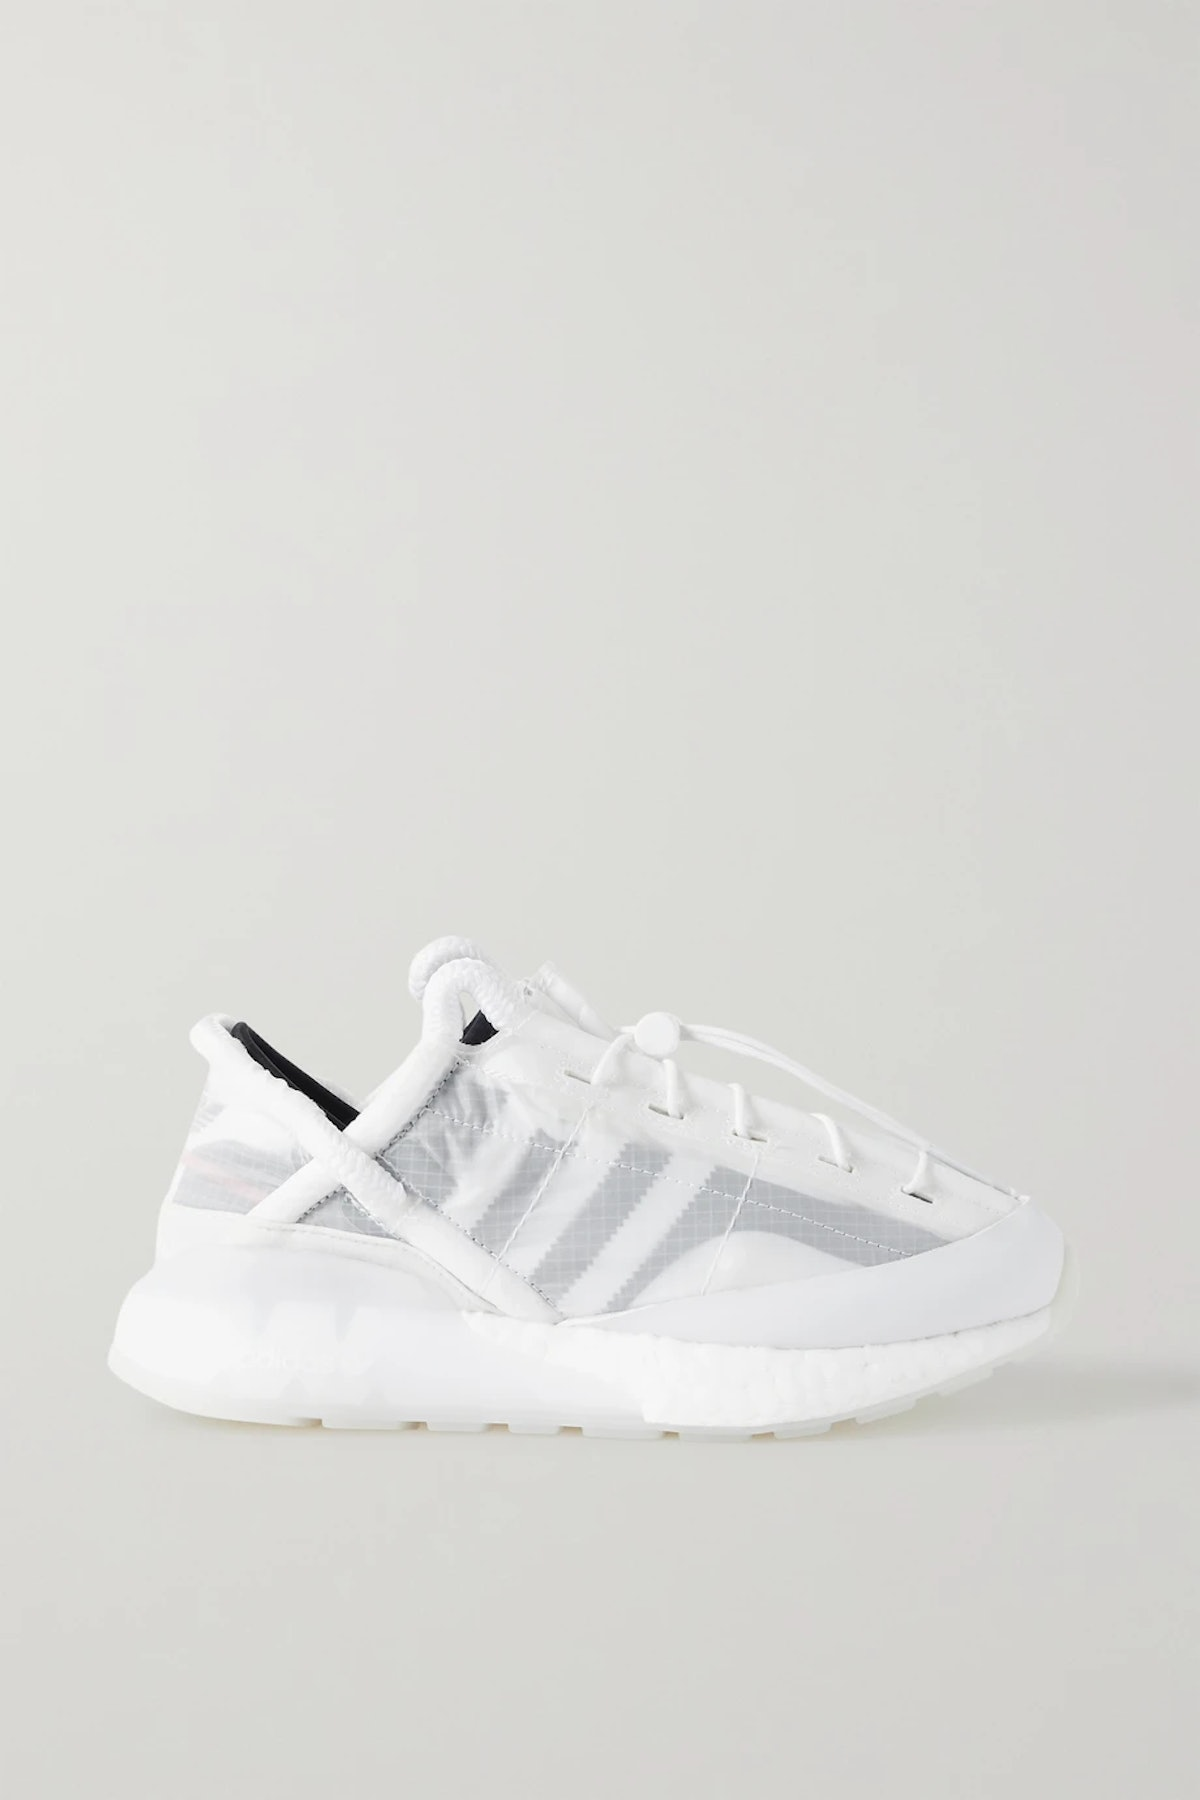 Craig Green ZX 2K Phormar Rubber And Felt-Trimmed Ripstop Sneakers